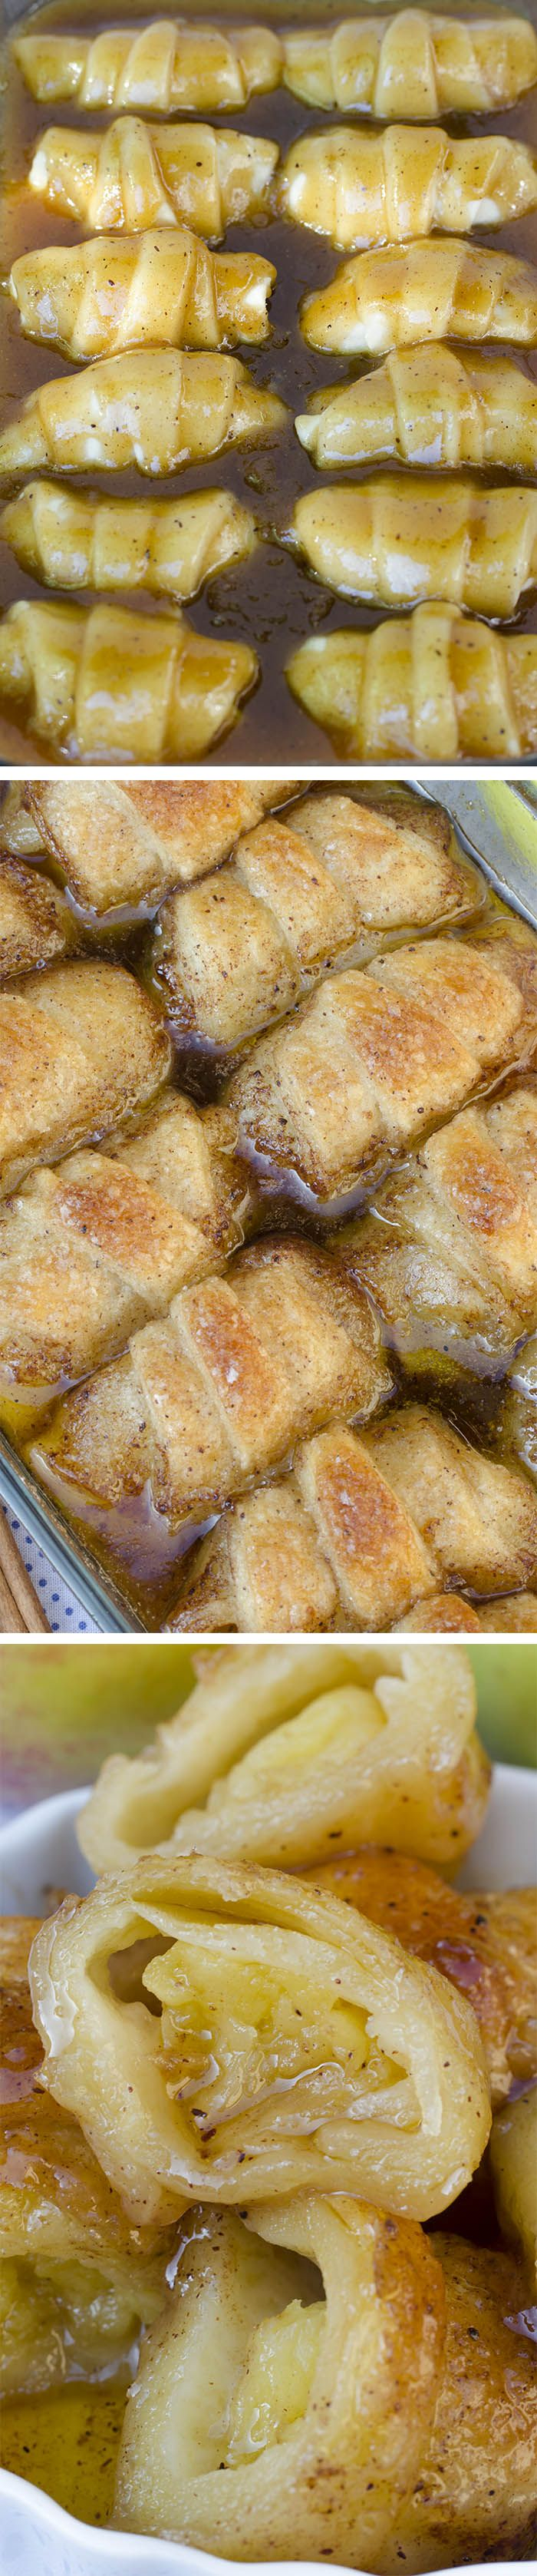 Snack time !! This recipe sounds sooo amazing ! #Easy #Apple #Dumplings...